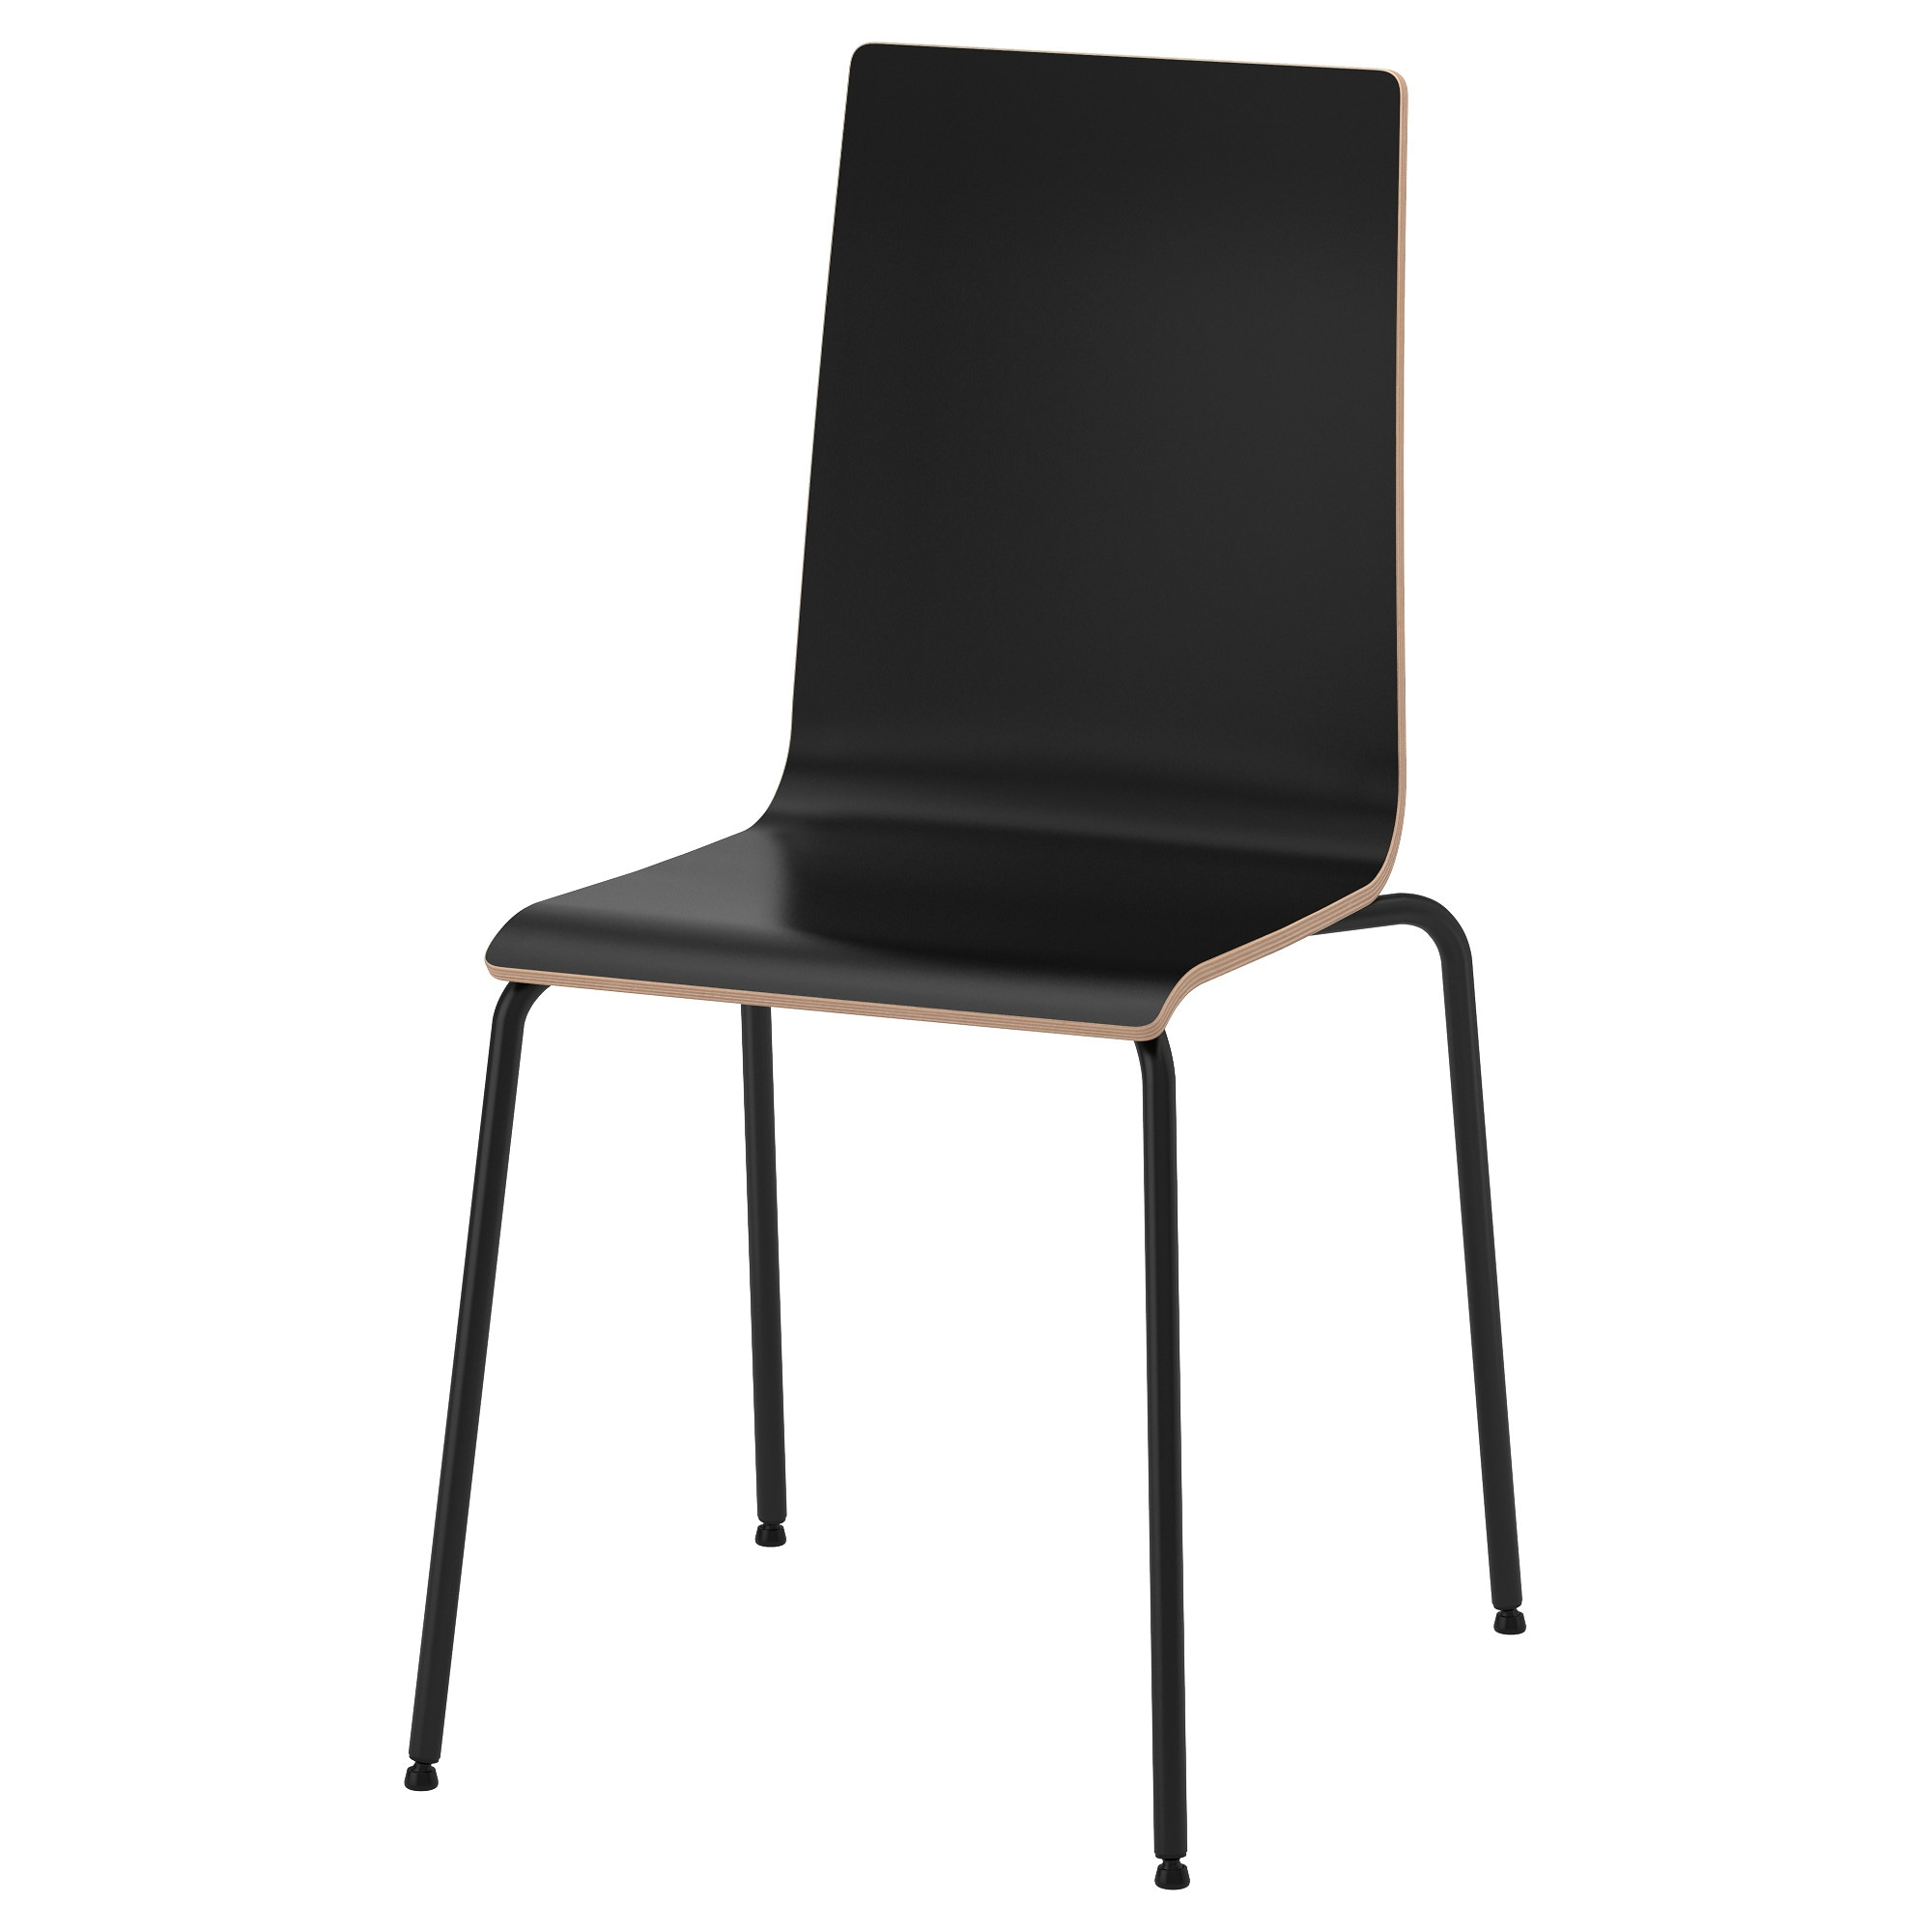 Free martin chair black black tested for lb width with for Chaise 65 cm ikea